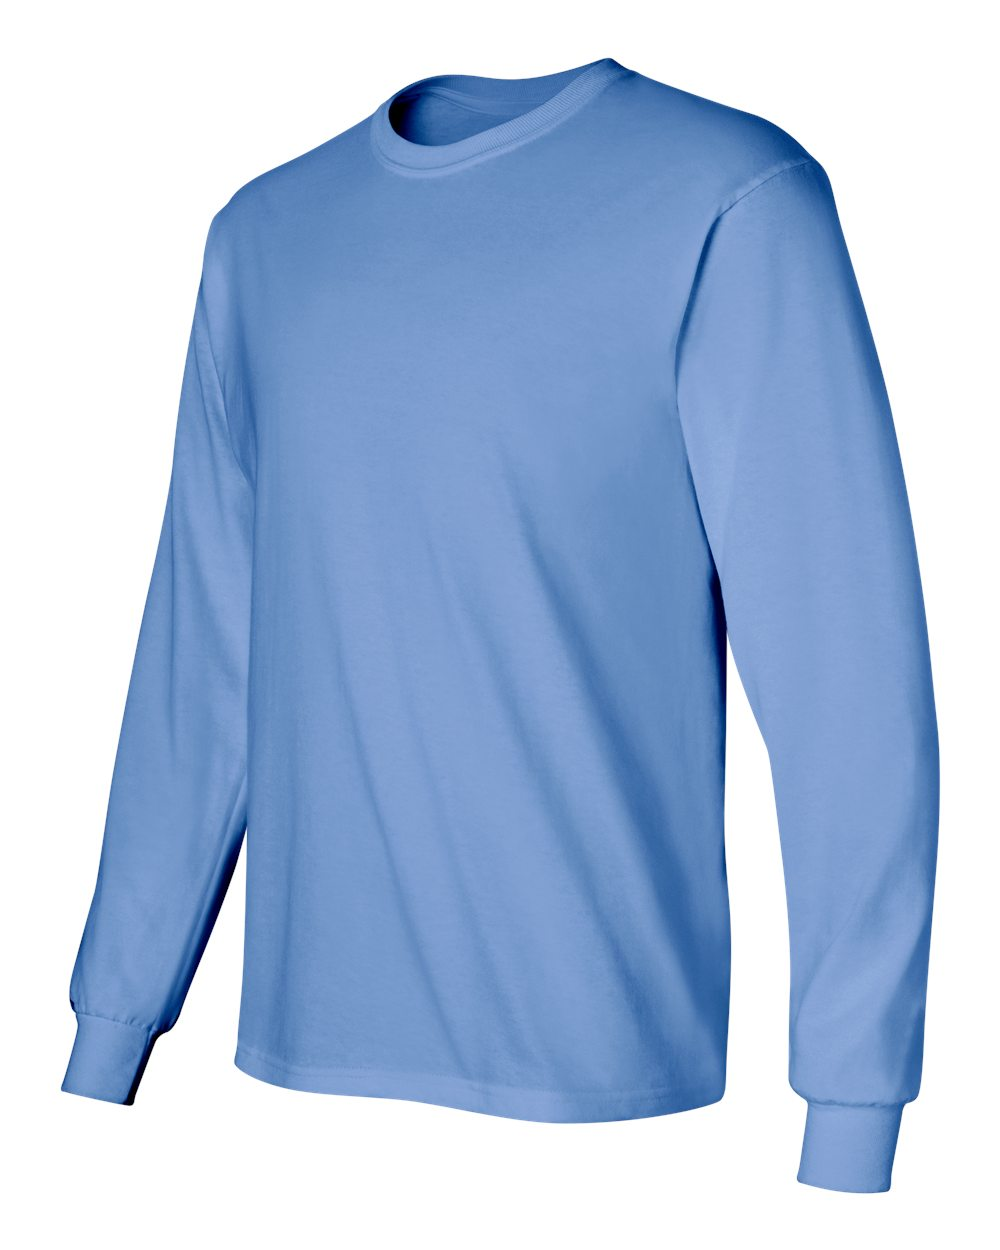 Gildan-Men-039-s-Ultra-Cotton-6-oz-Long-Sleeve-T-Shirt-G240-S-5XL thumbnail 15